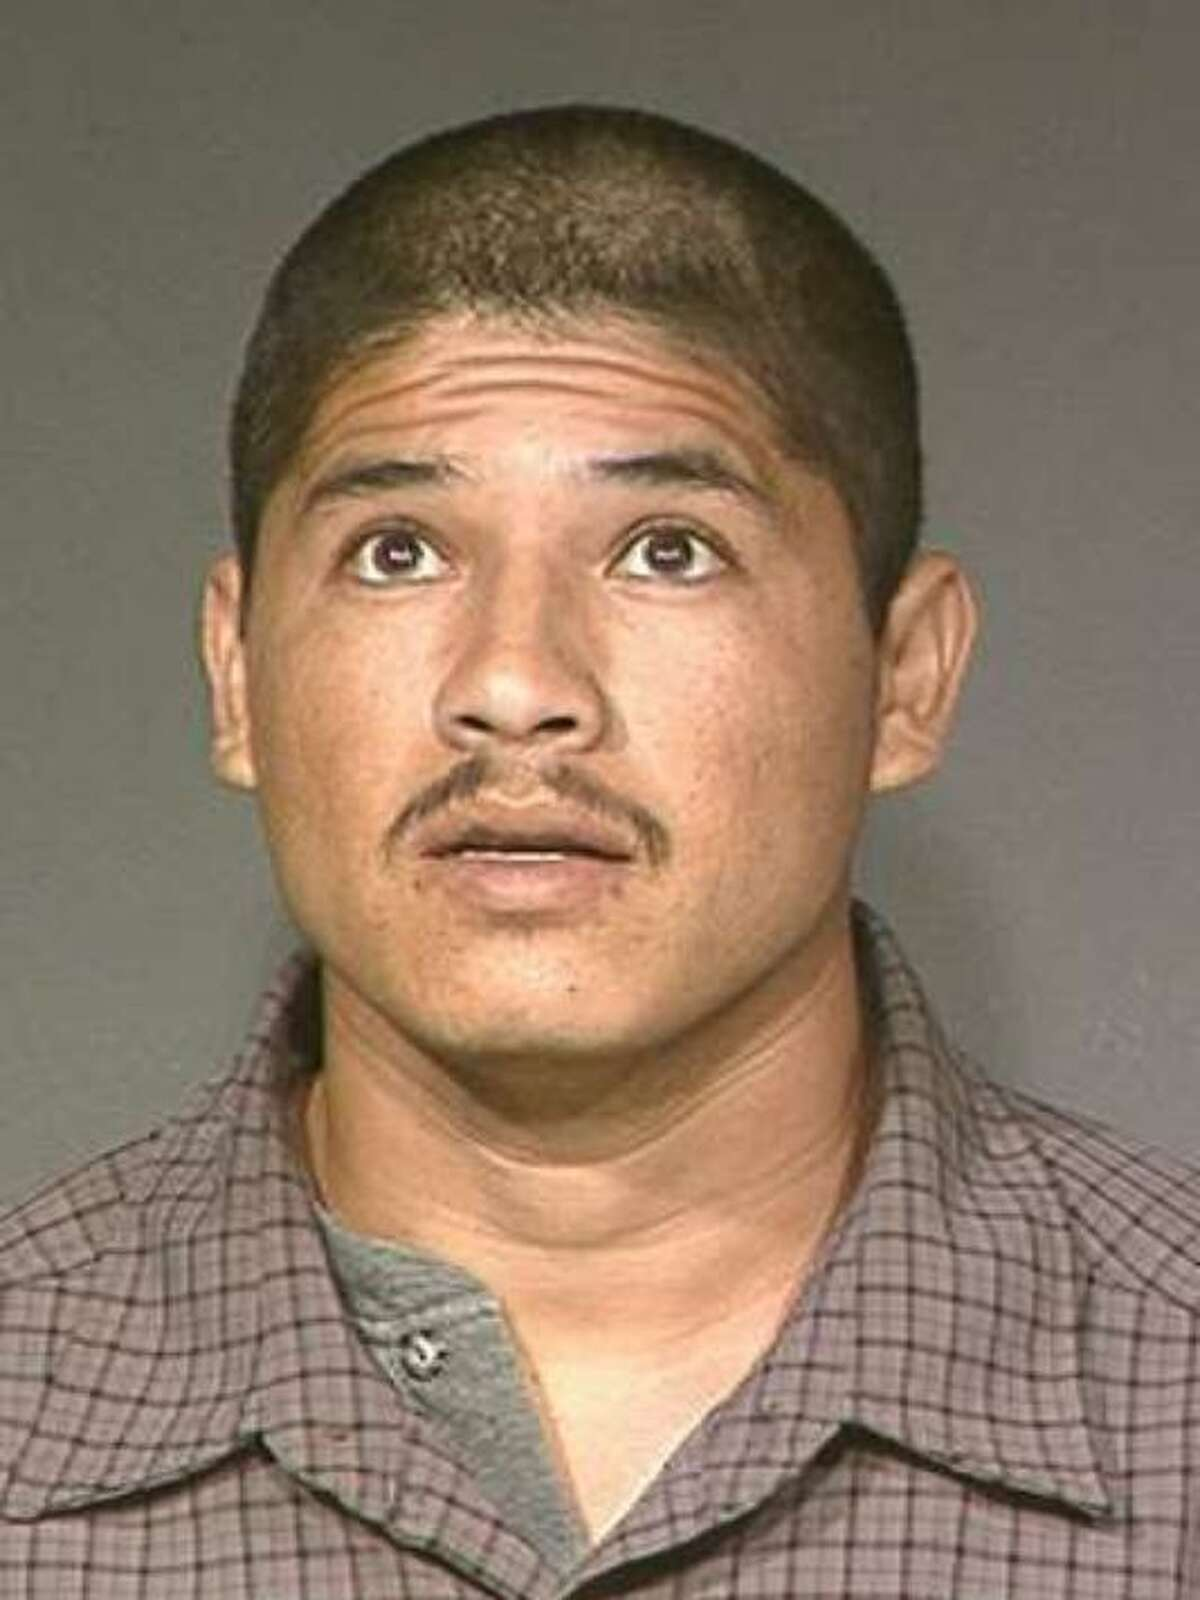 FILE-- Luis Enrique Monroy-Bracamonte. Monroy-Bracamonte who was arrested in the 2014 killings of two Northern California deputies appeared in court Tuesday, laughing, smiling and shouting out that a deputy was a coward as the prosecution laid out the timeline of the crime spree that spanned Sacramento and Placer counties.